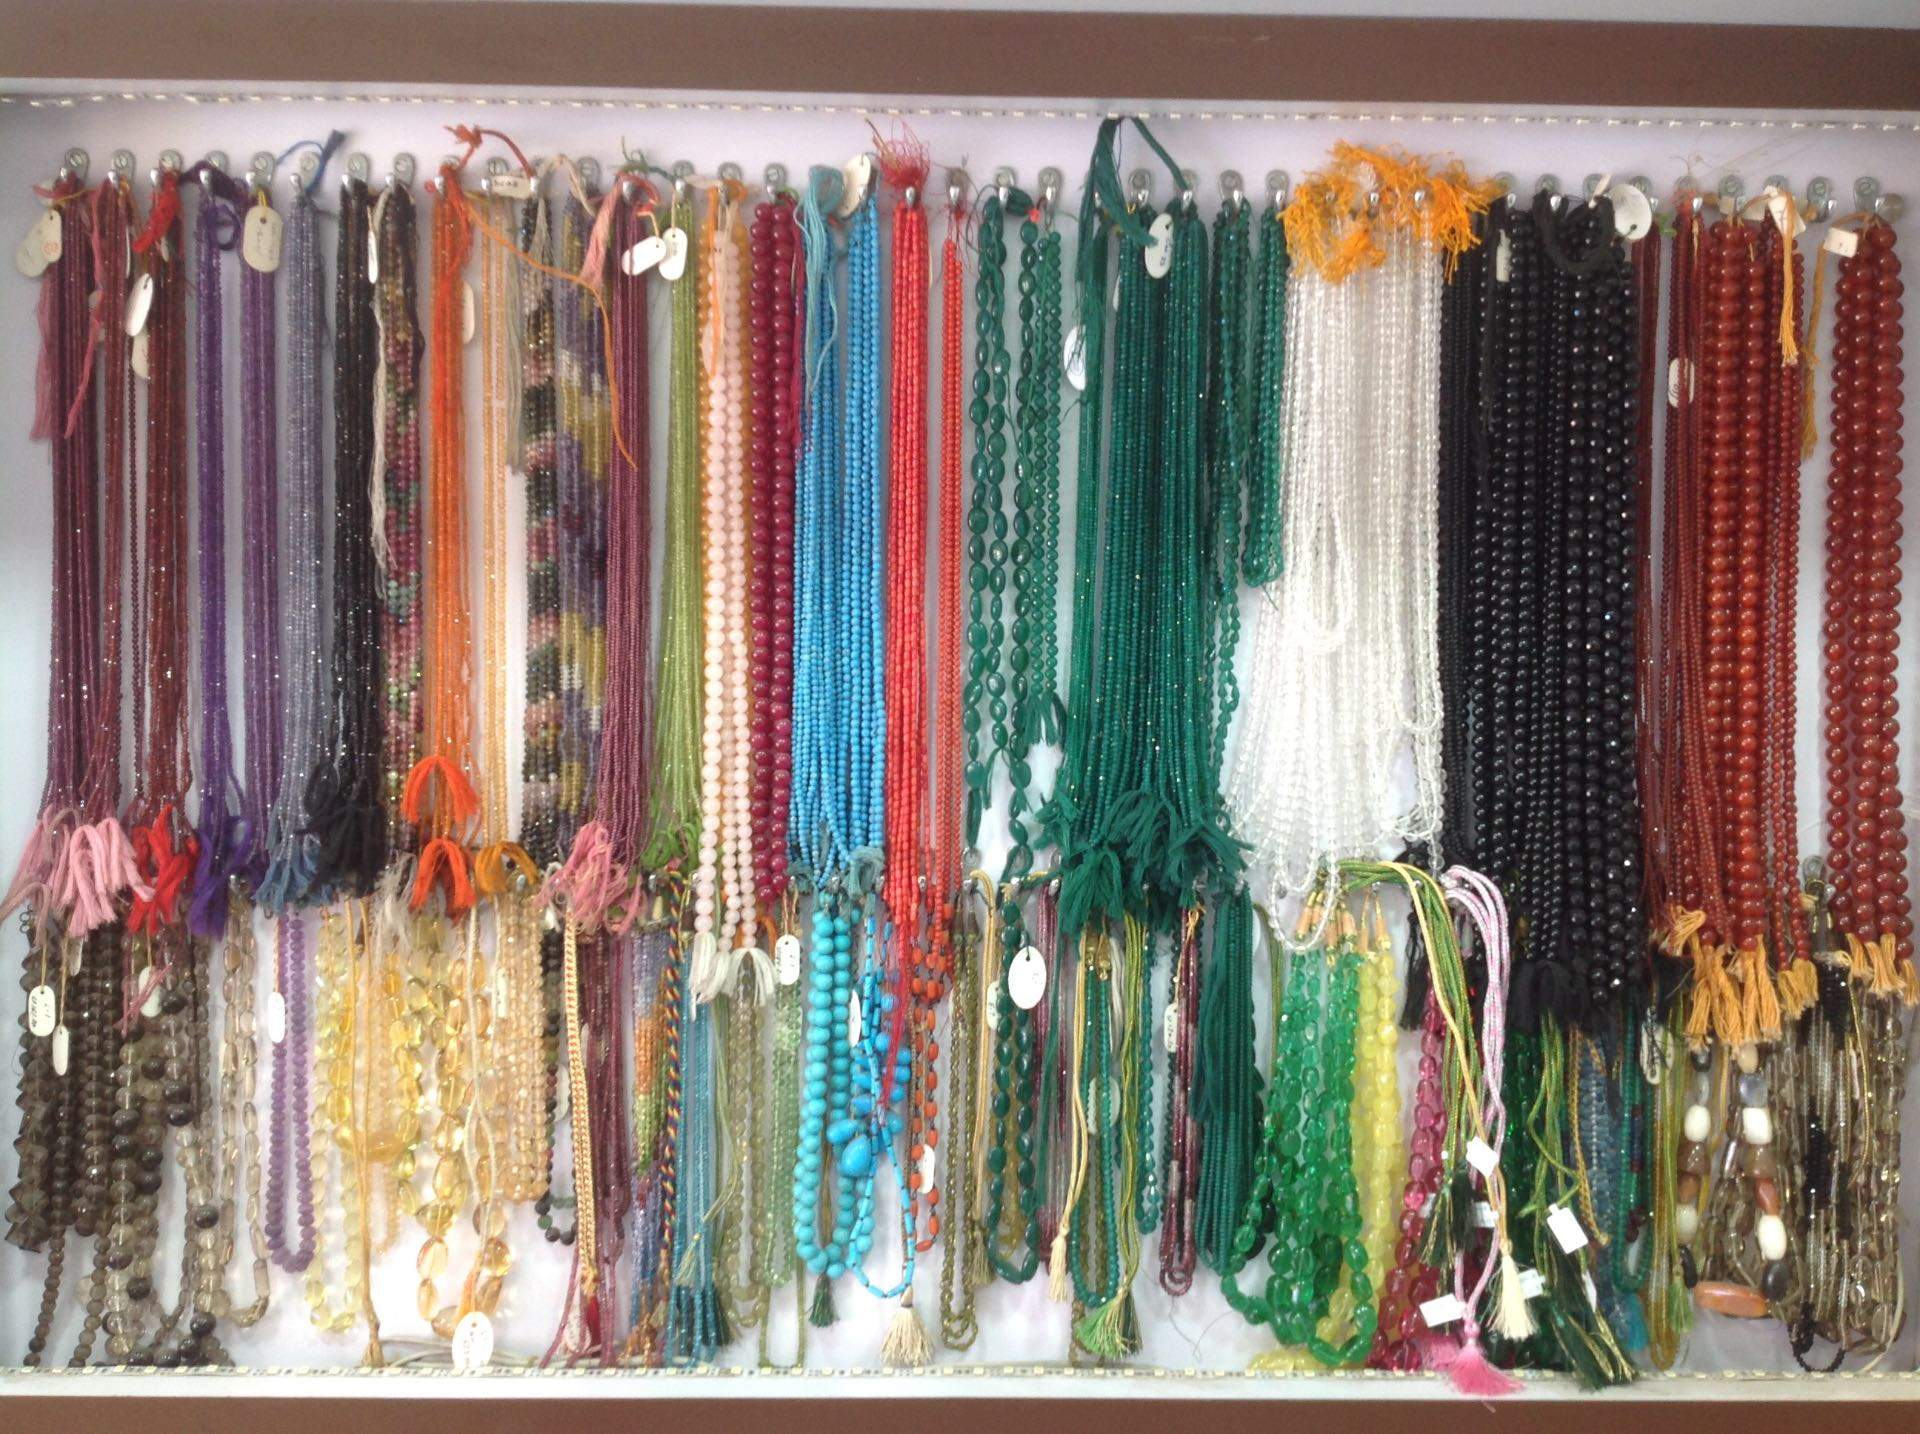 Top 100 Gemstone Dealers in Chippi Chawl-Kalbadevi - Best